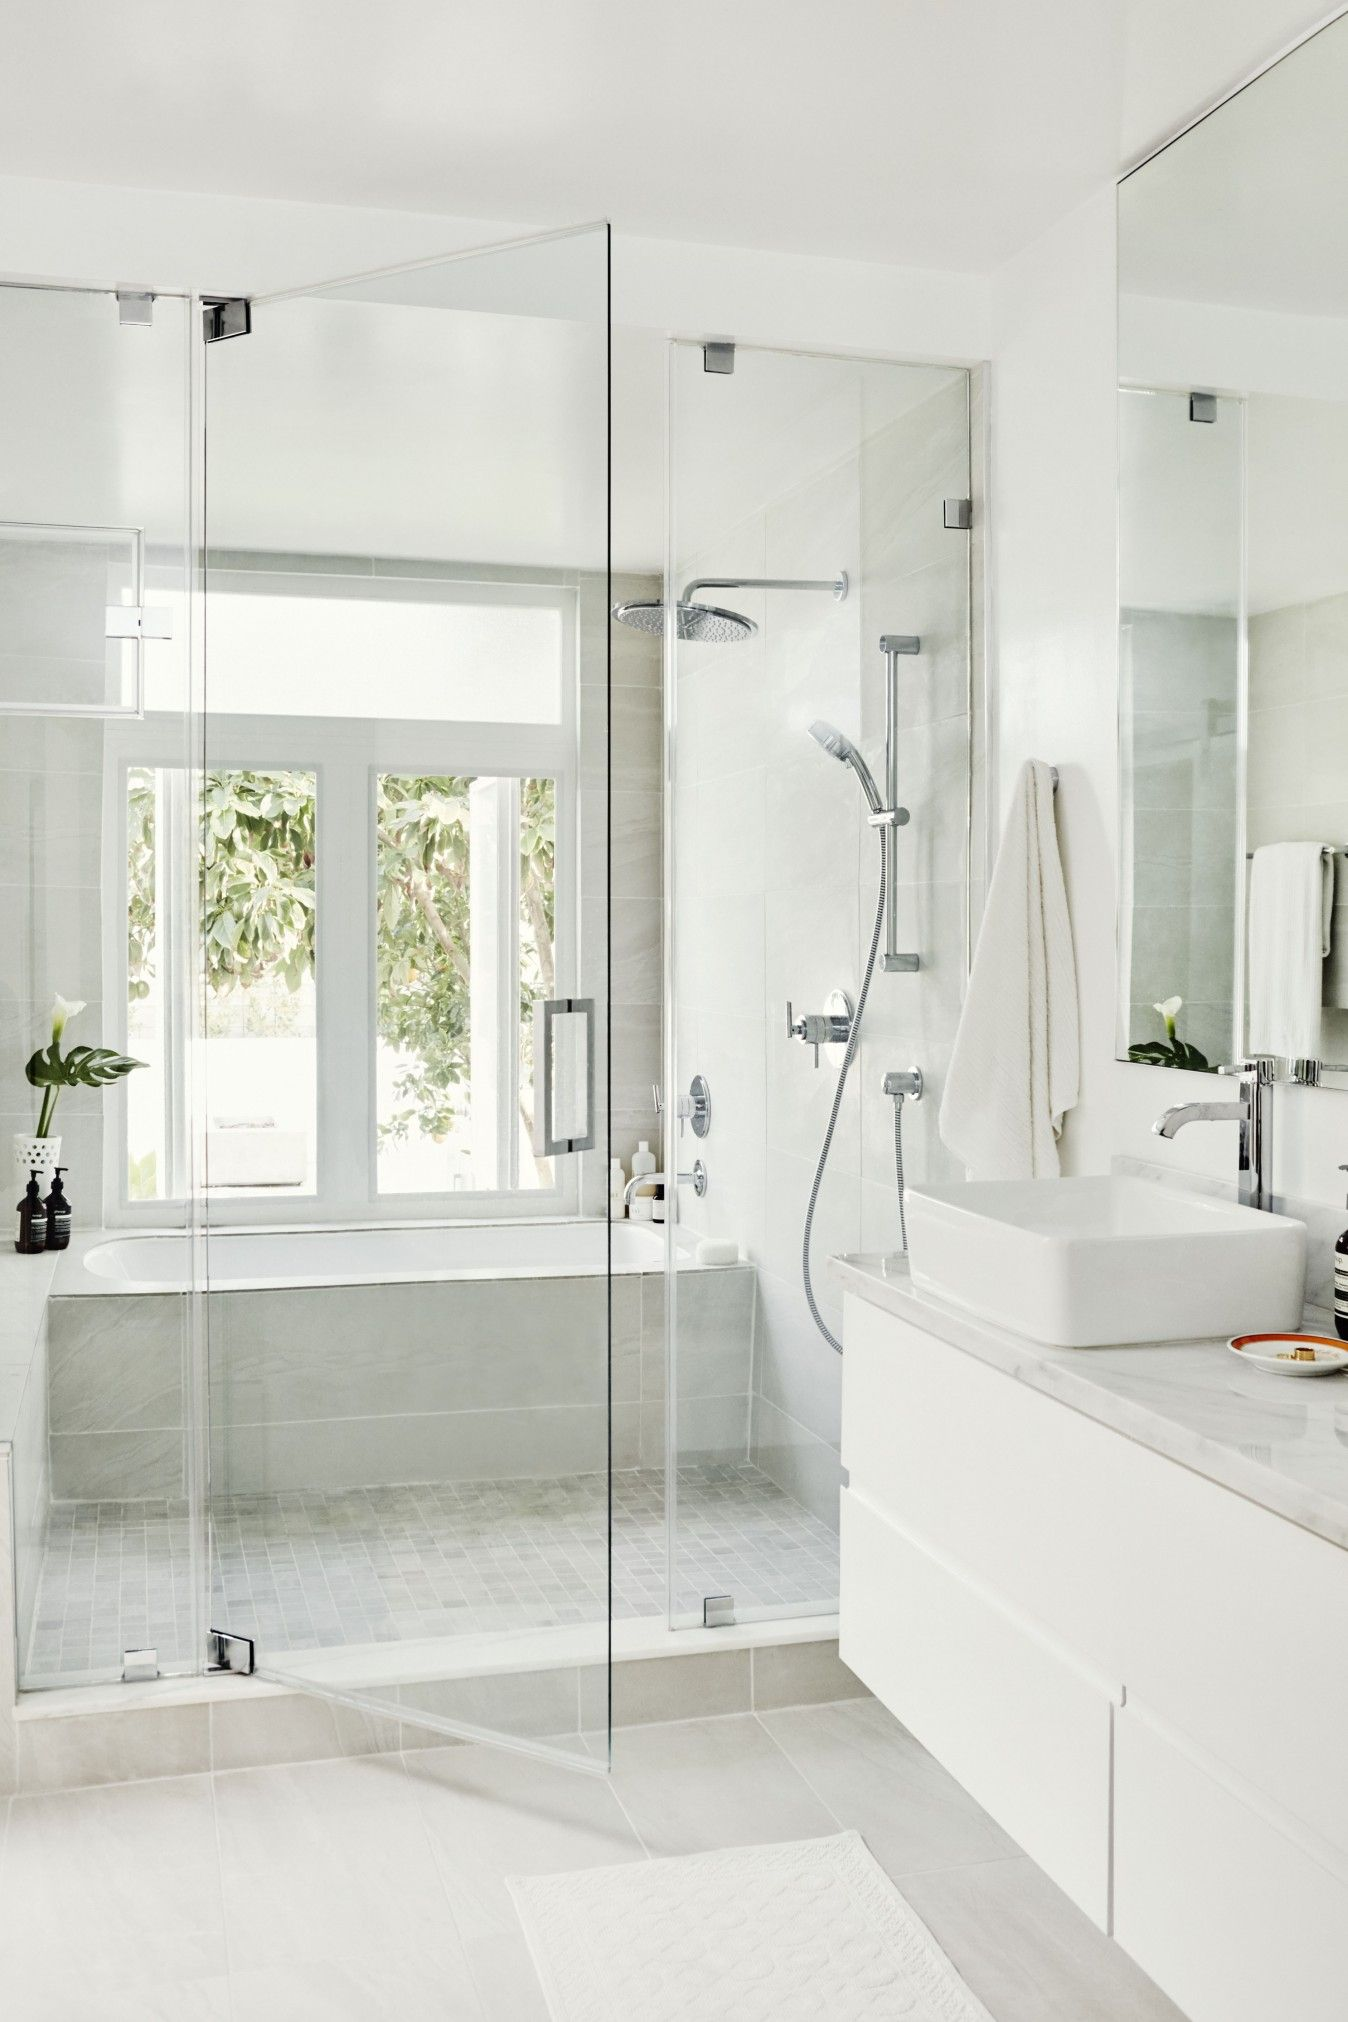 Pin by GUTHEART on Pour la Maison • Tubs & Sinks | Pinterest | Bath ...